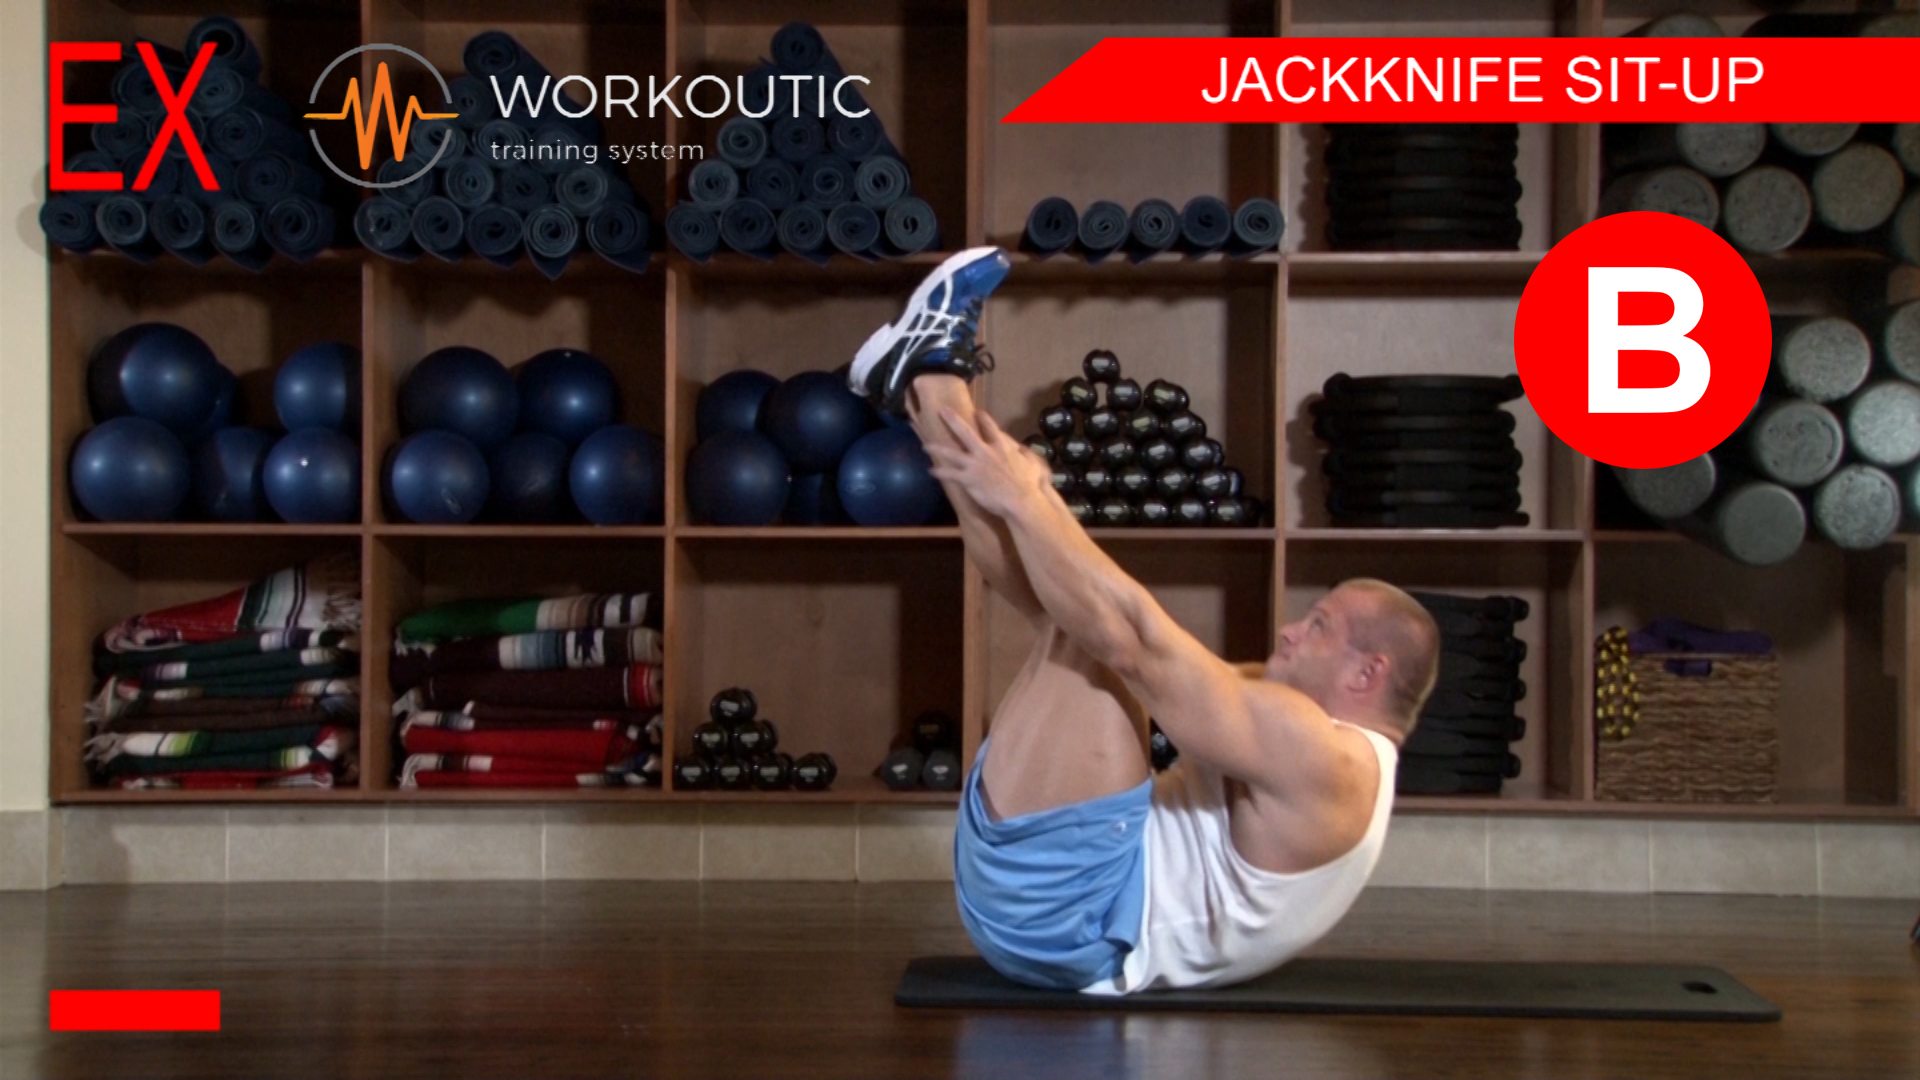 Abs Exercises - Workutic - 6 pack special - Jackknife Sit Up Exhale